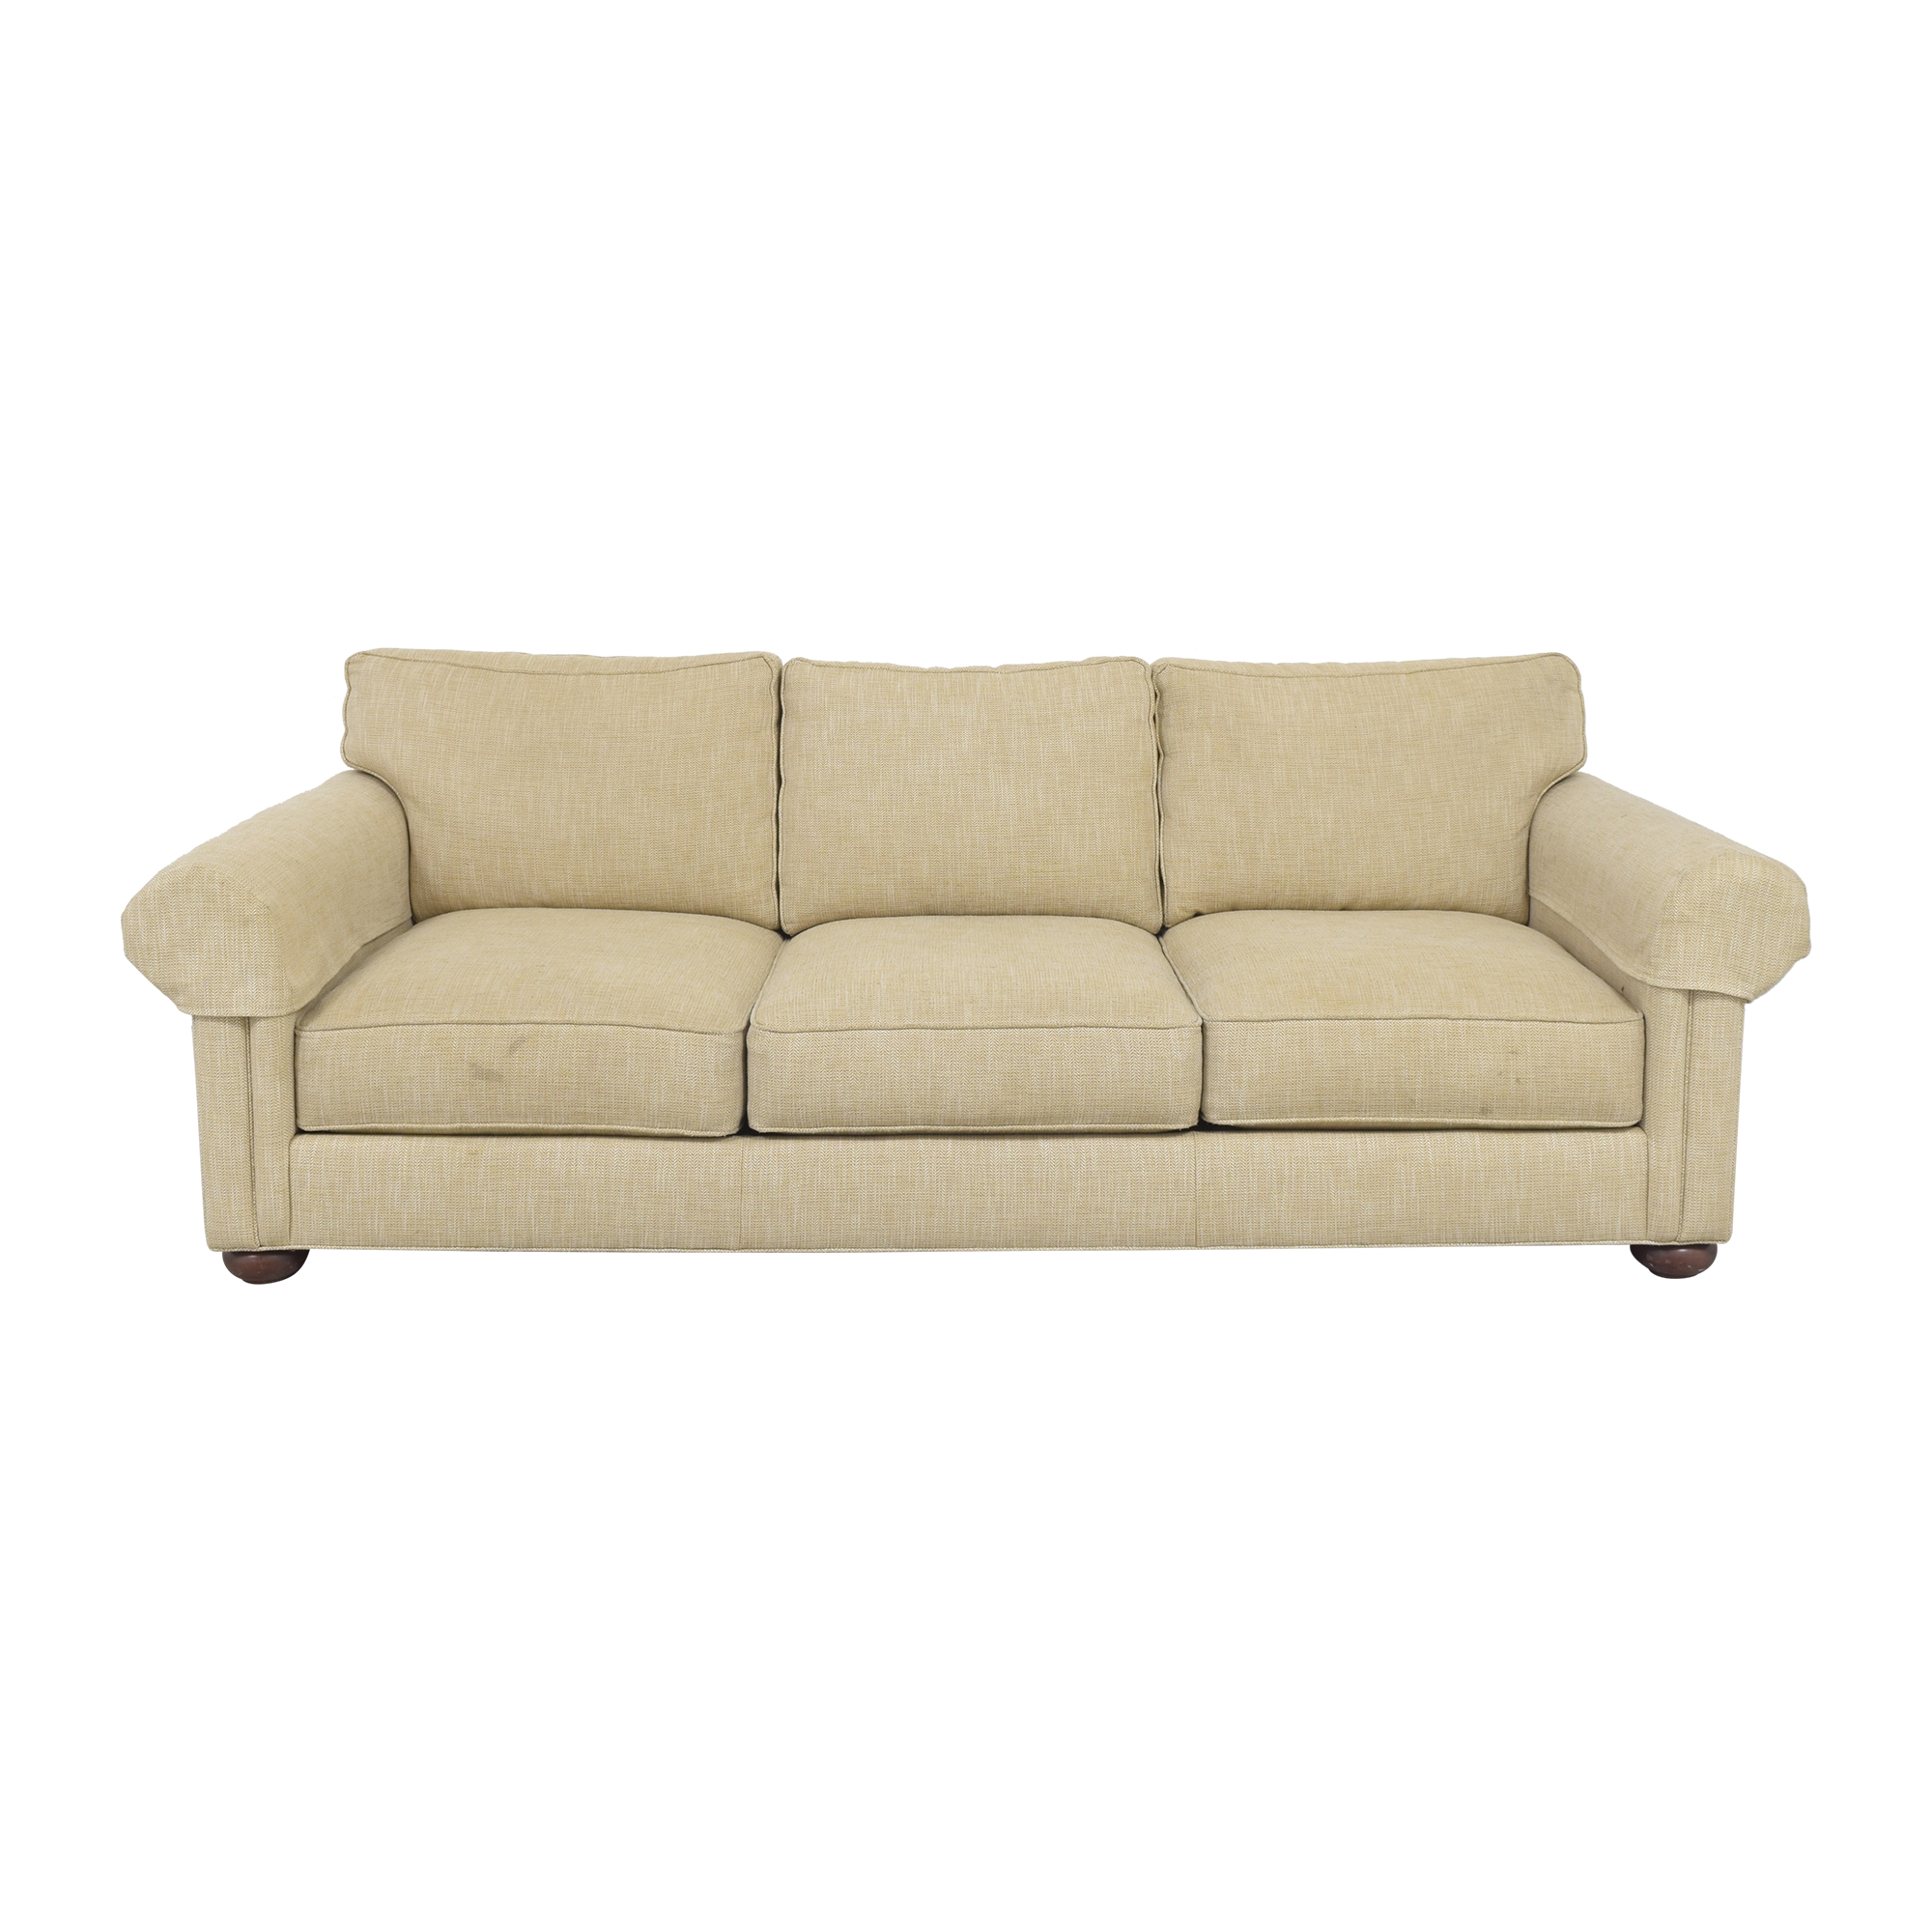 shop Ethan Allen Ethan Allen Three Cushion Sofa online